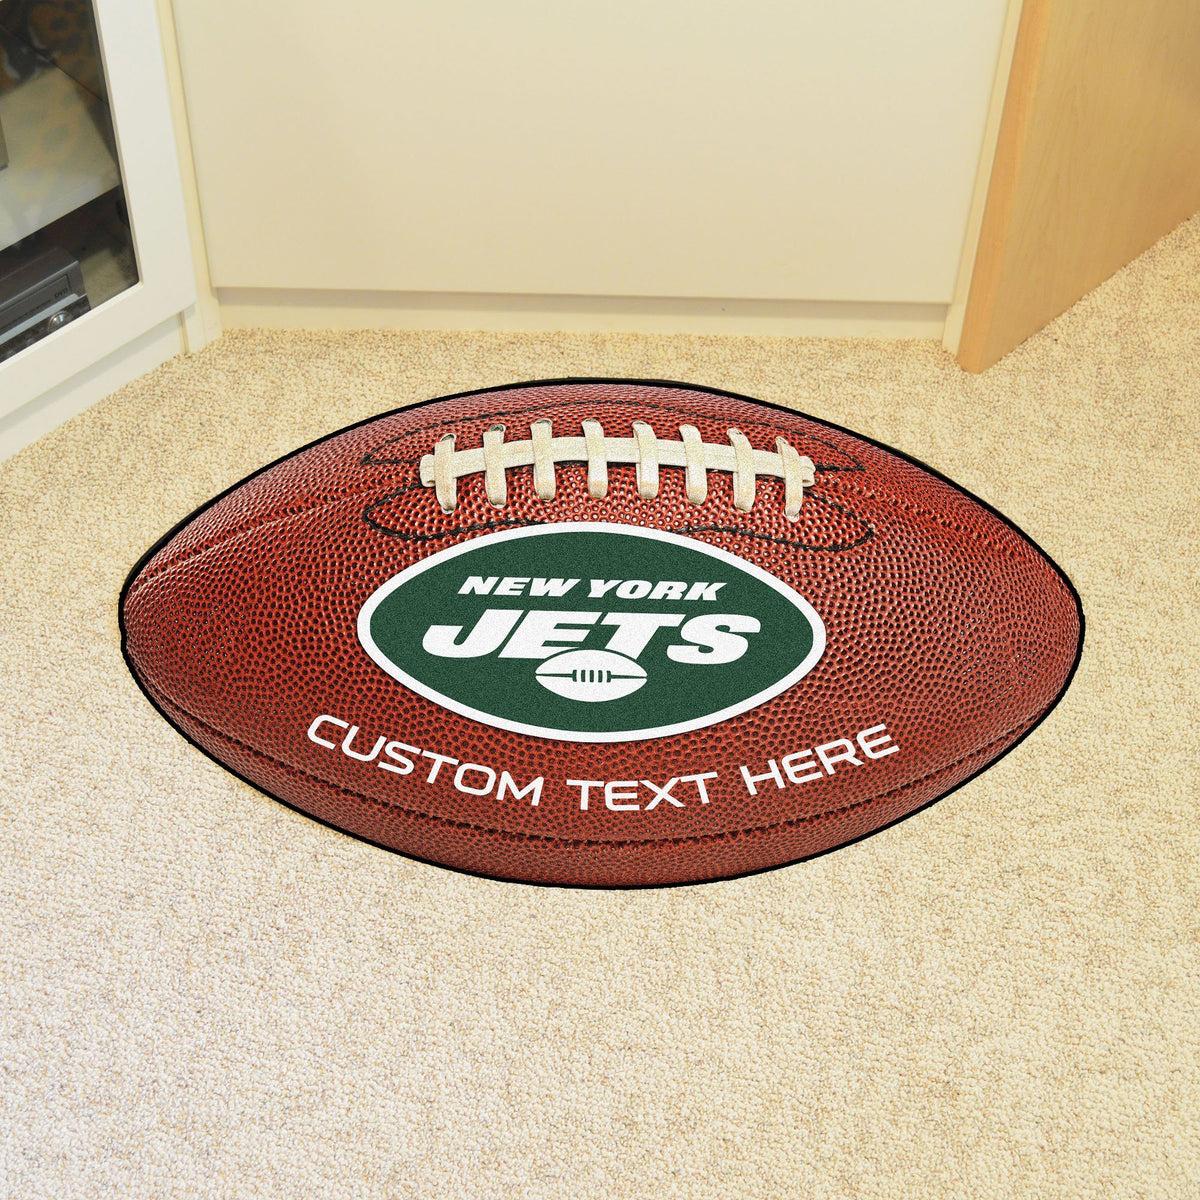 NFL Personalized Football Mat Personalized Football Mat Fan Mats New York Jets